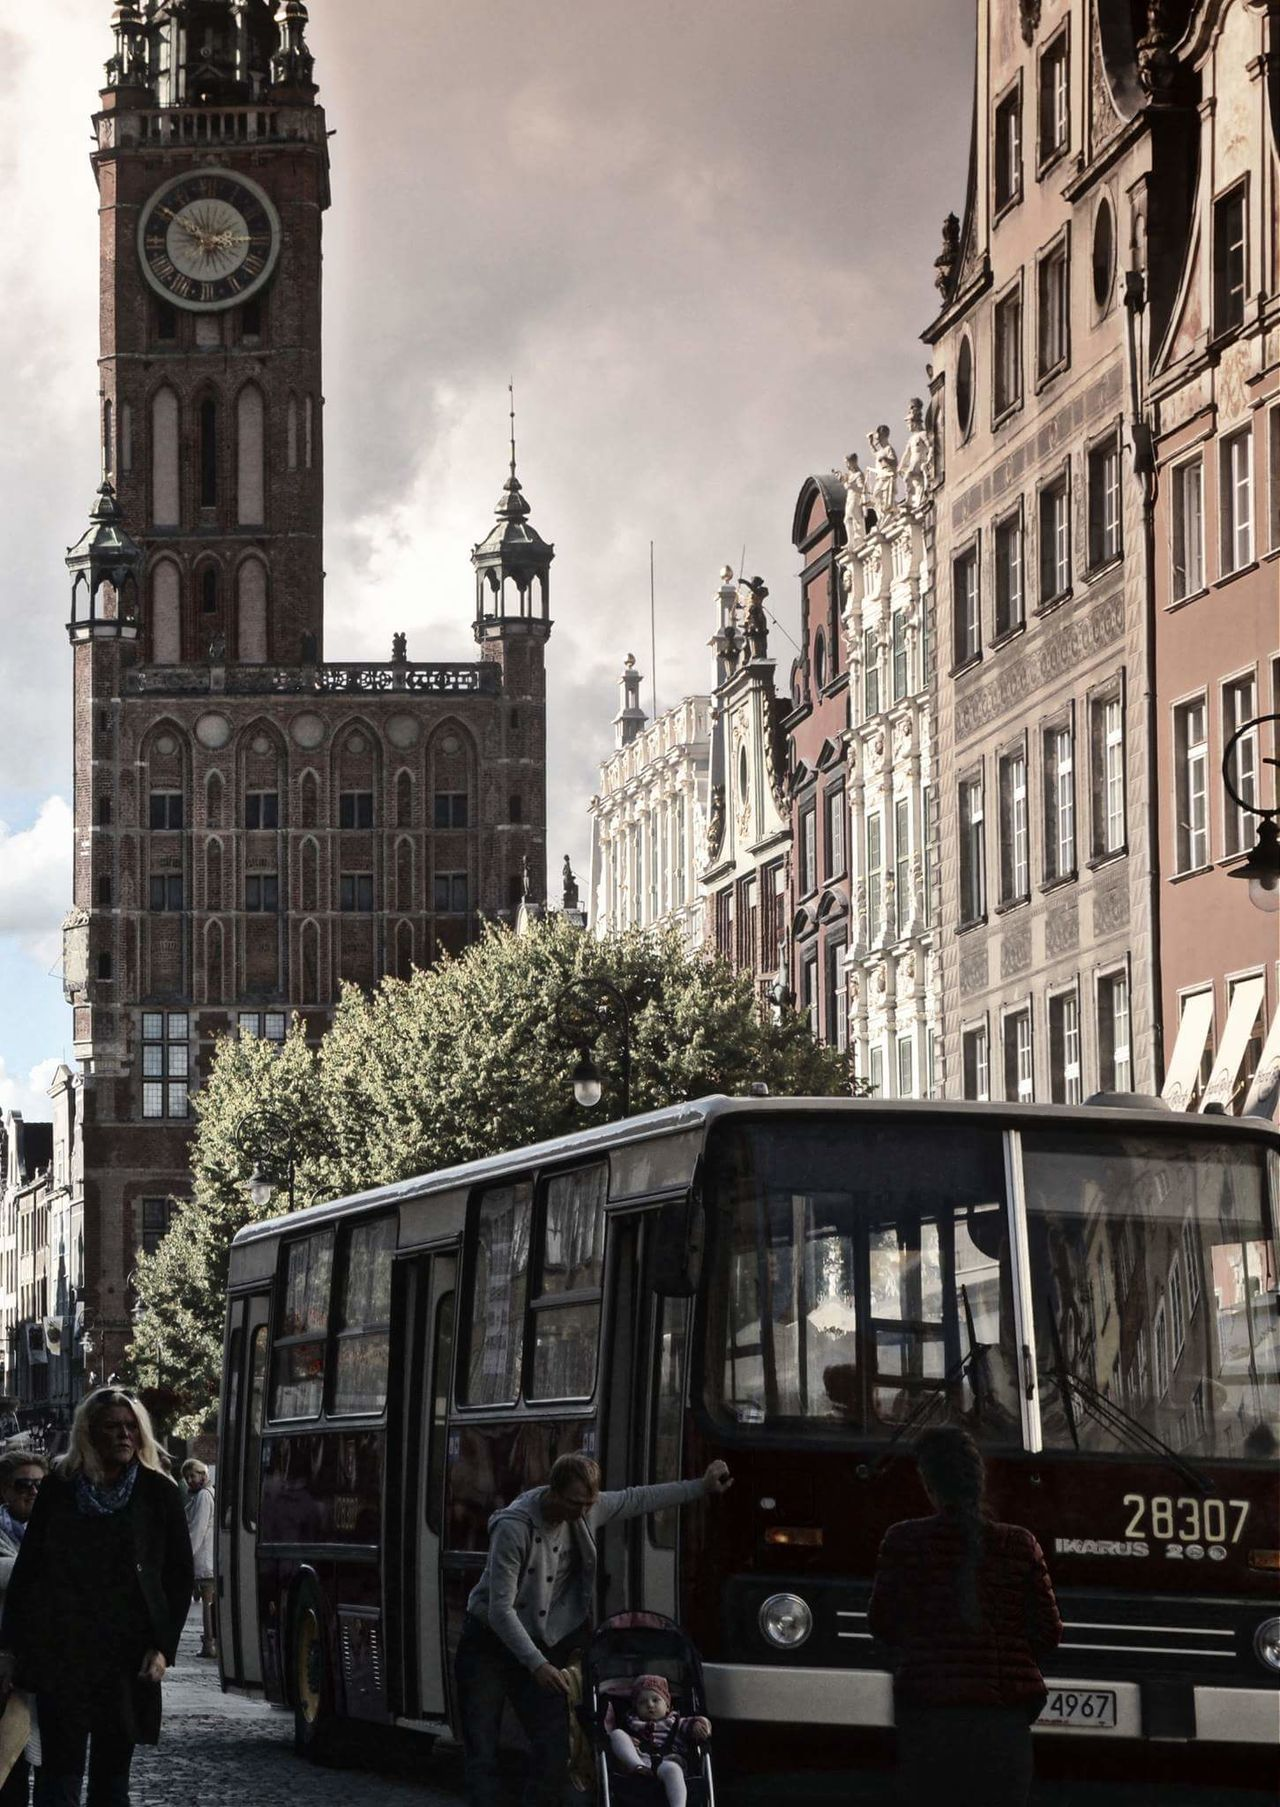 Clock Tower Architecture Old-fashioned No People Clock Cultures Built Structure Day Victorian Style Travel Destinations City Minute Hand Travel Outdoors Clock Face Statue Gdańsk. Gdańskeye Gdansk,poland Night Gdansk (Danzig) Cityscape City Gdansk_official Sky